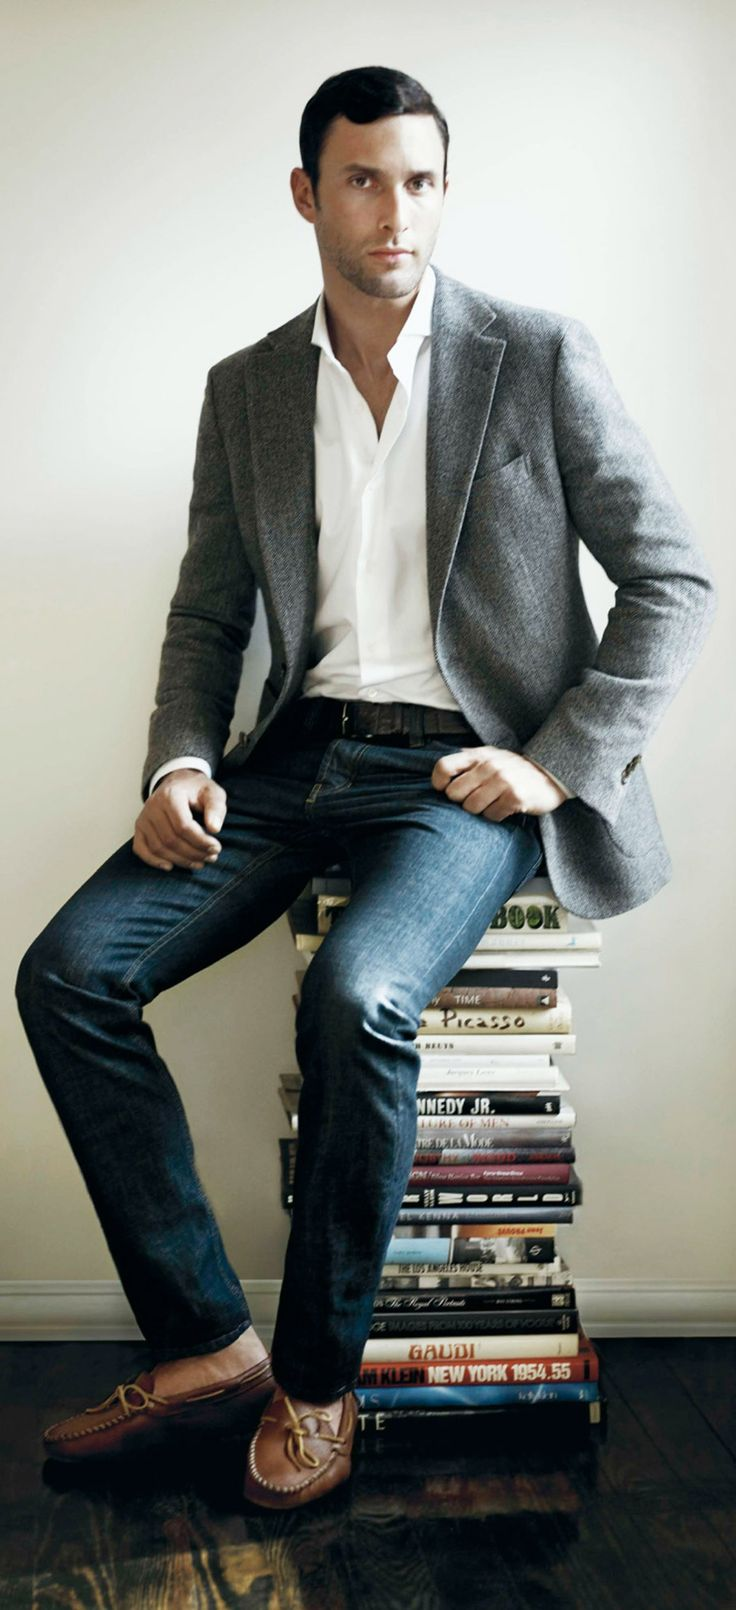 NOAH MILLS Sports coat and jeans, Casual sport coats